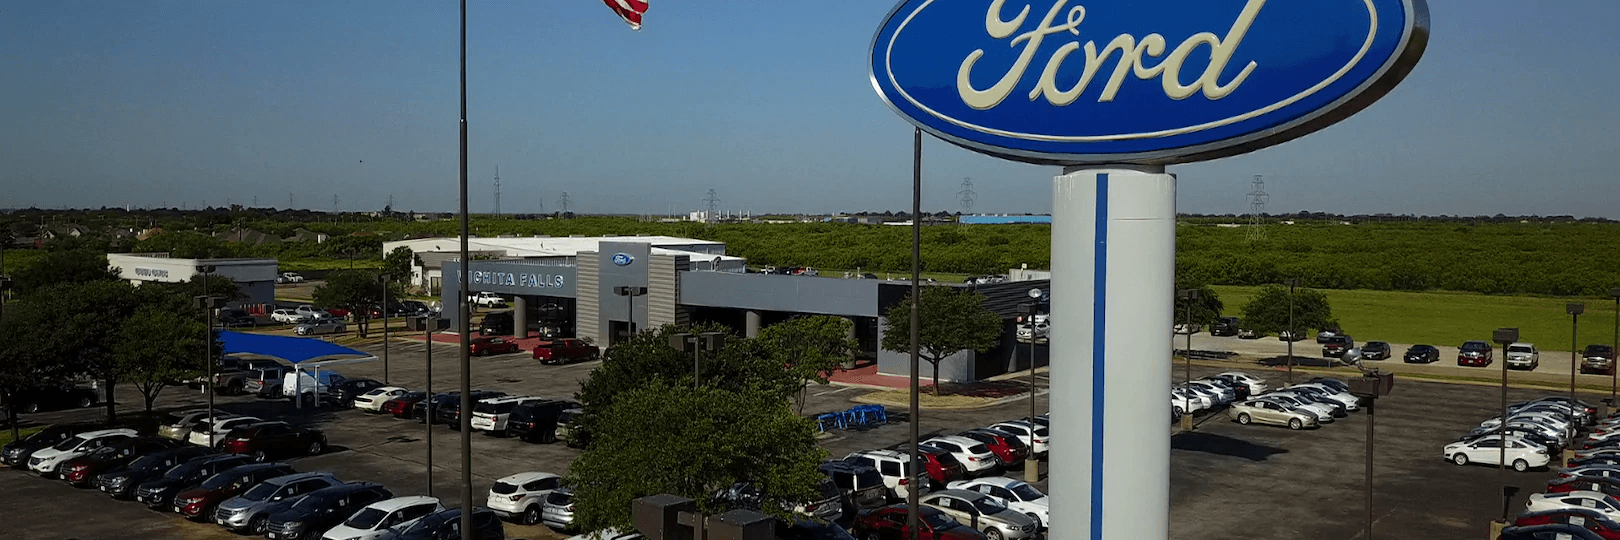 Ford House Wichita Falls Tx >> Ford Dealer In Wichita Falls Tx Used Cars Wichita Falls